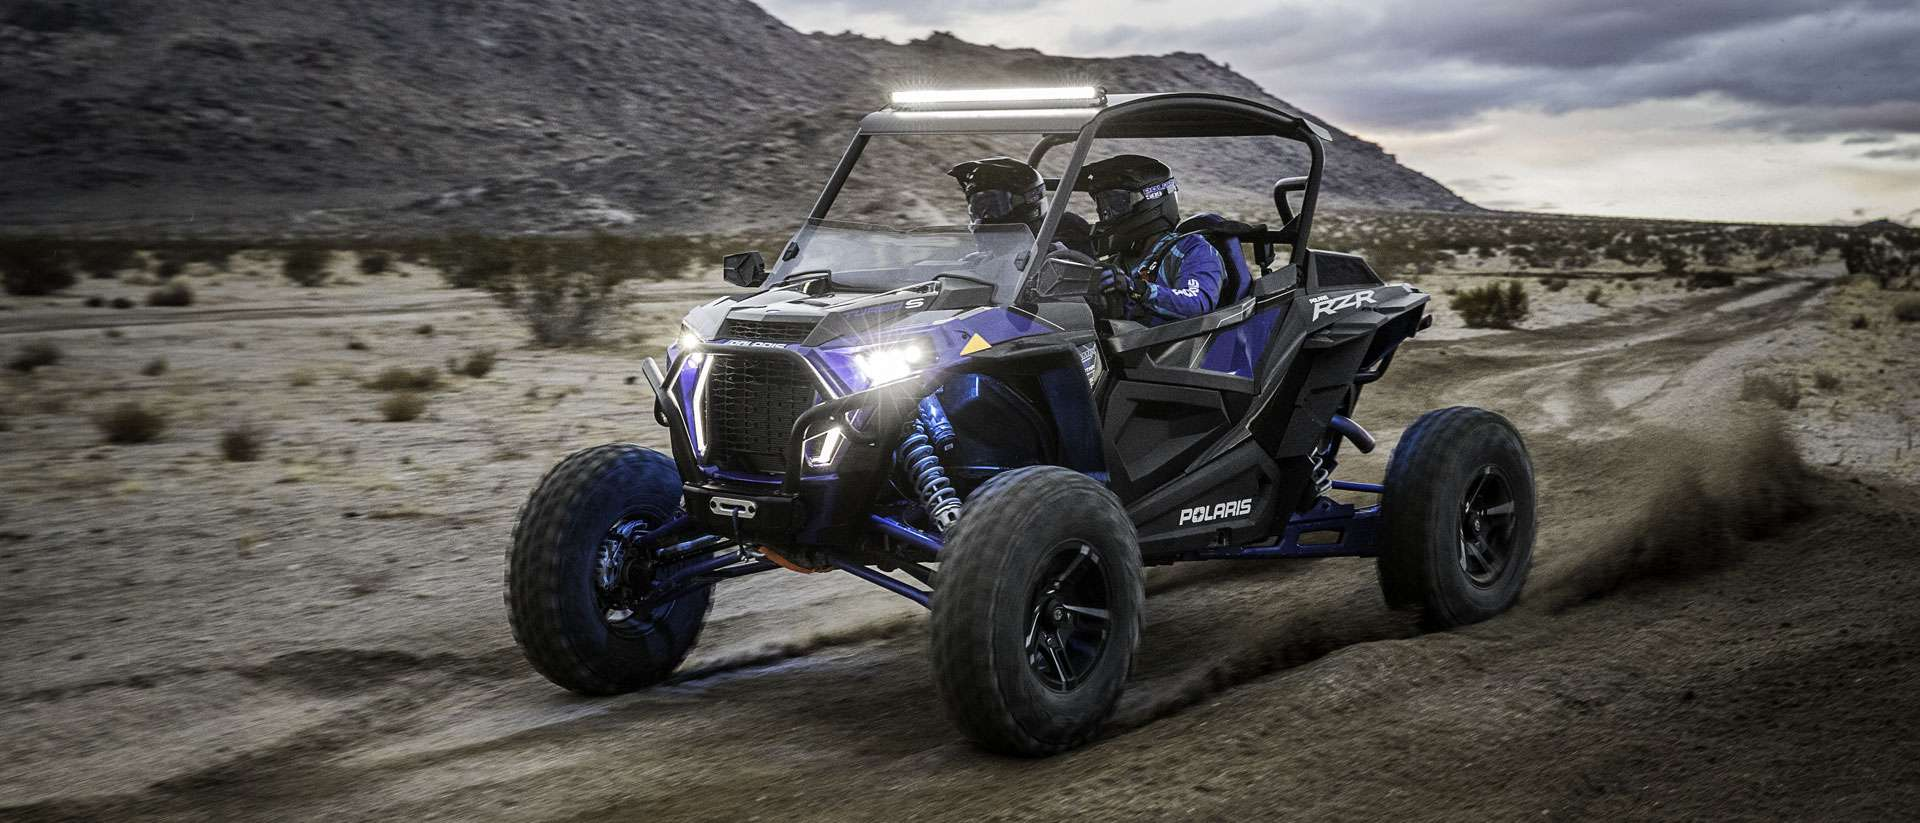 Shop Polaris at Cycle Town South